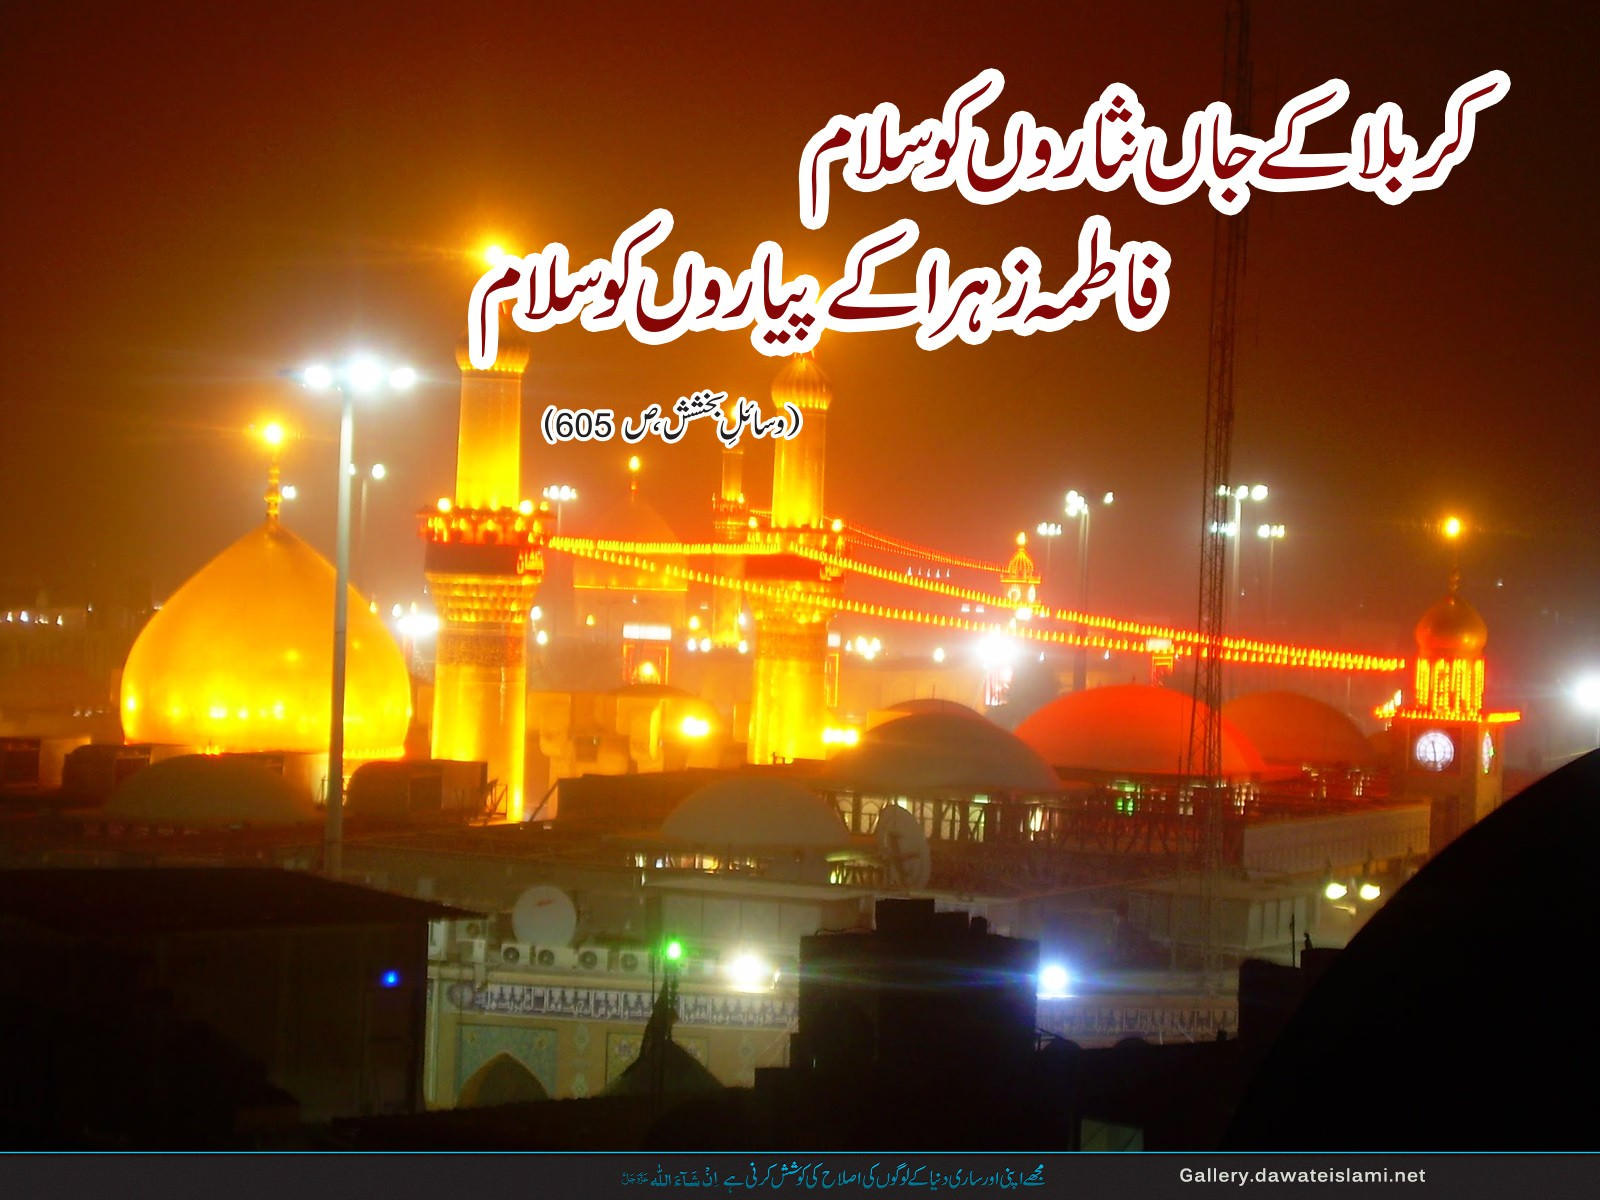 Karbala kay jan nisaron ko salaam - Muharram Wallpapers